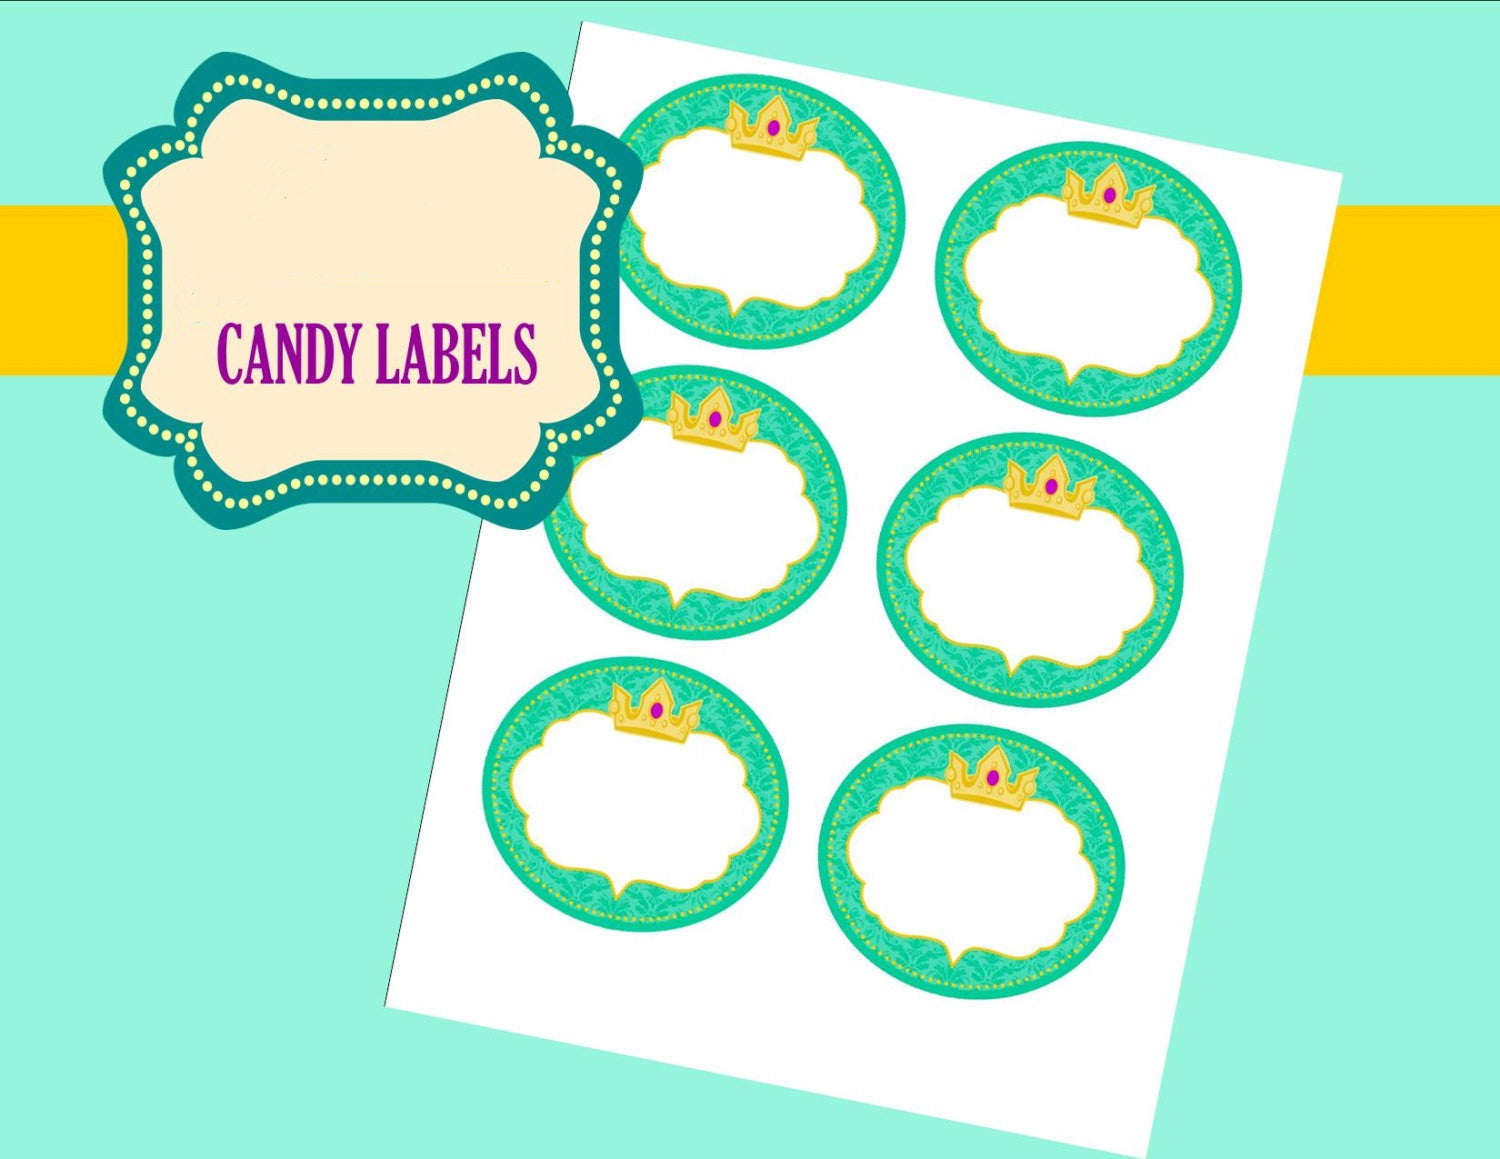 Princess Party - Princess CANDY LABELS - Jewel Candy